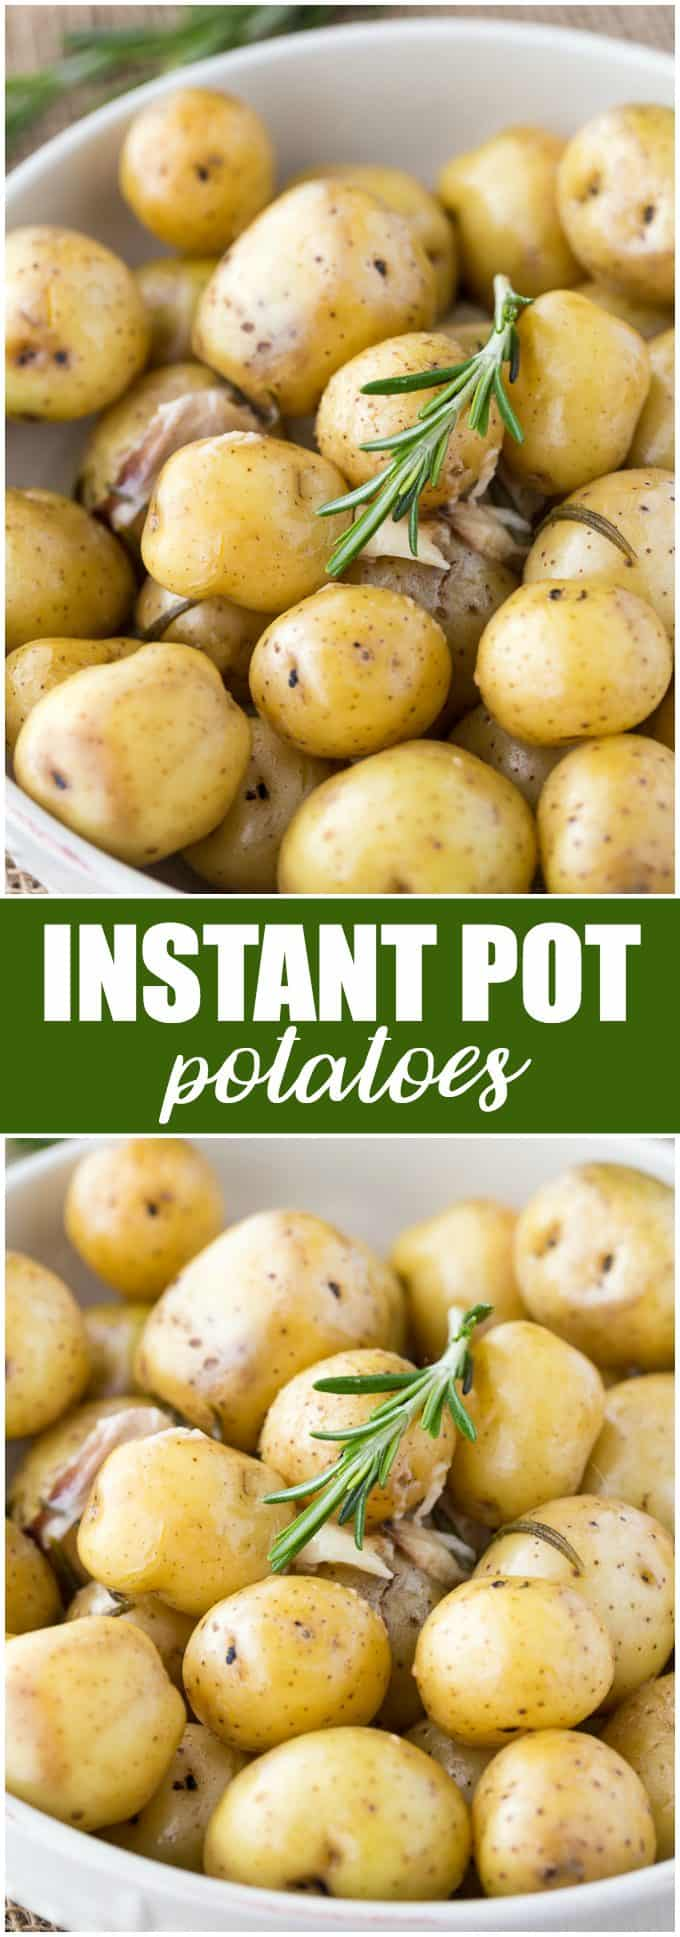 Instant Pot Potatoes - Perfectly tender and flavourful, you'll love how fast it is to make this delicious side dish with your Instant Pot!